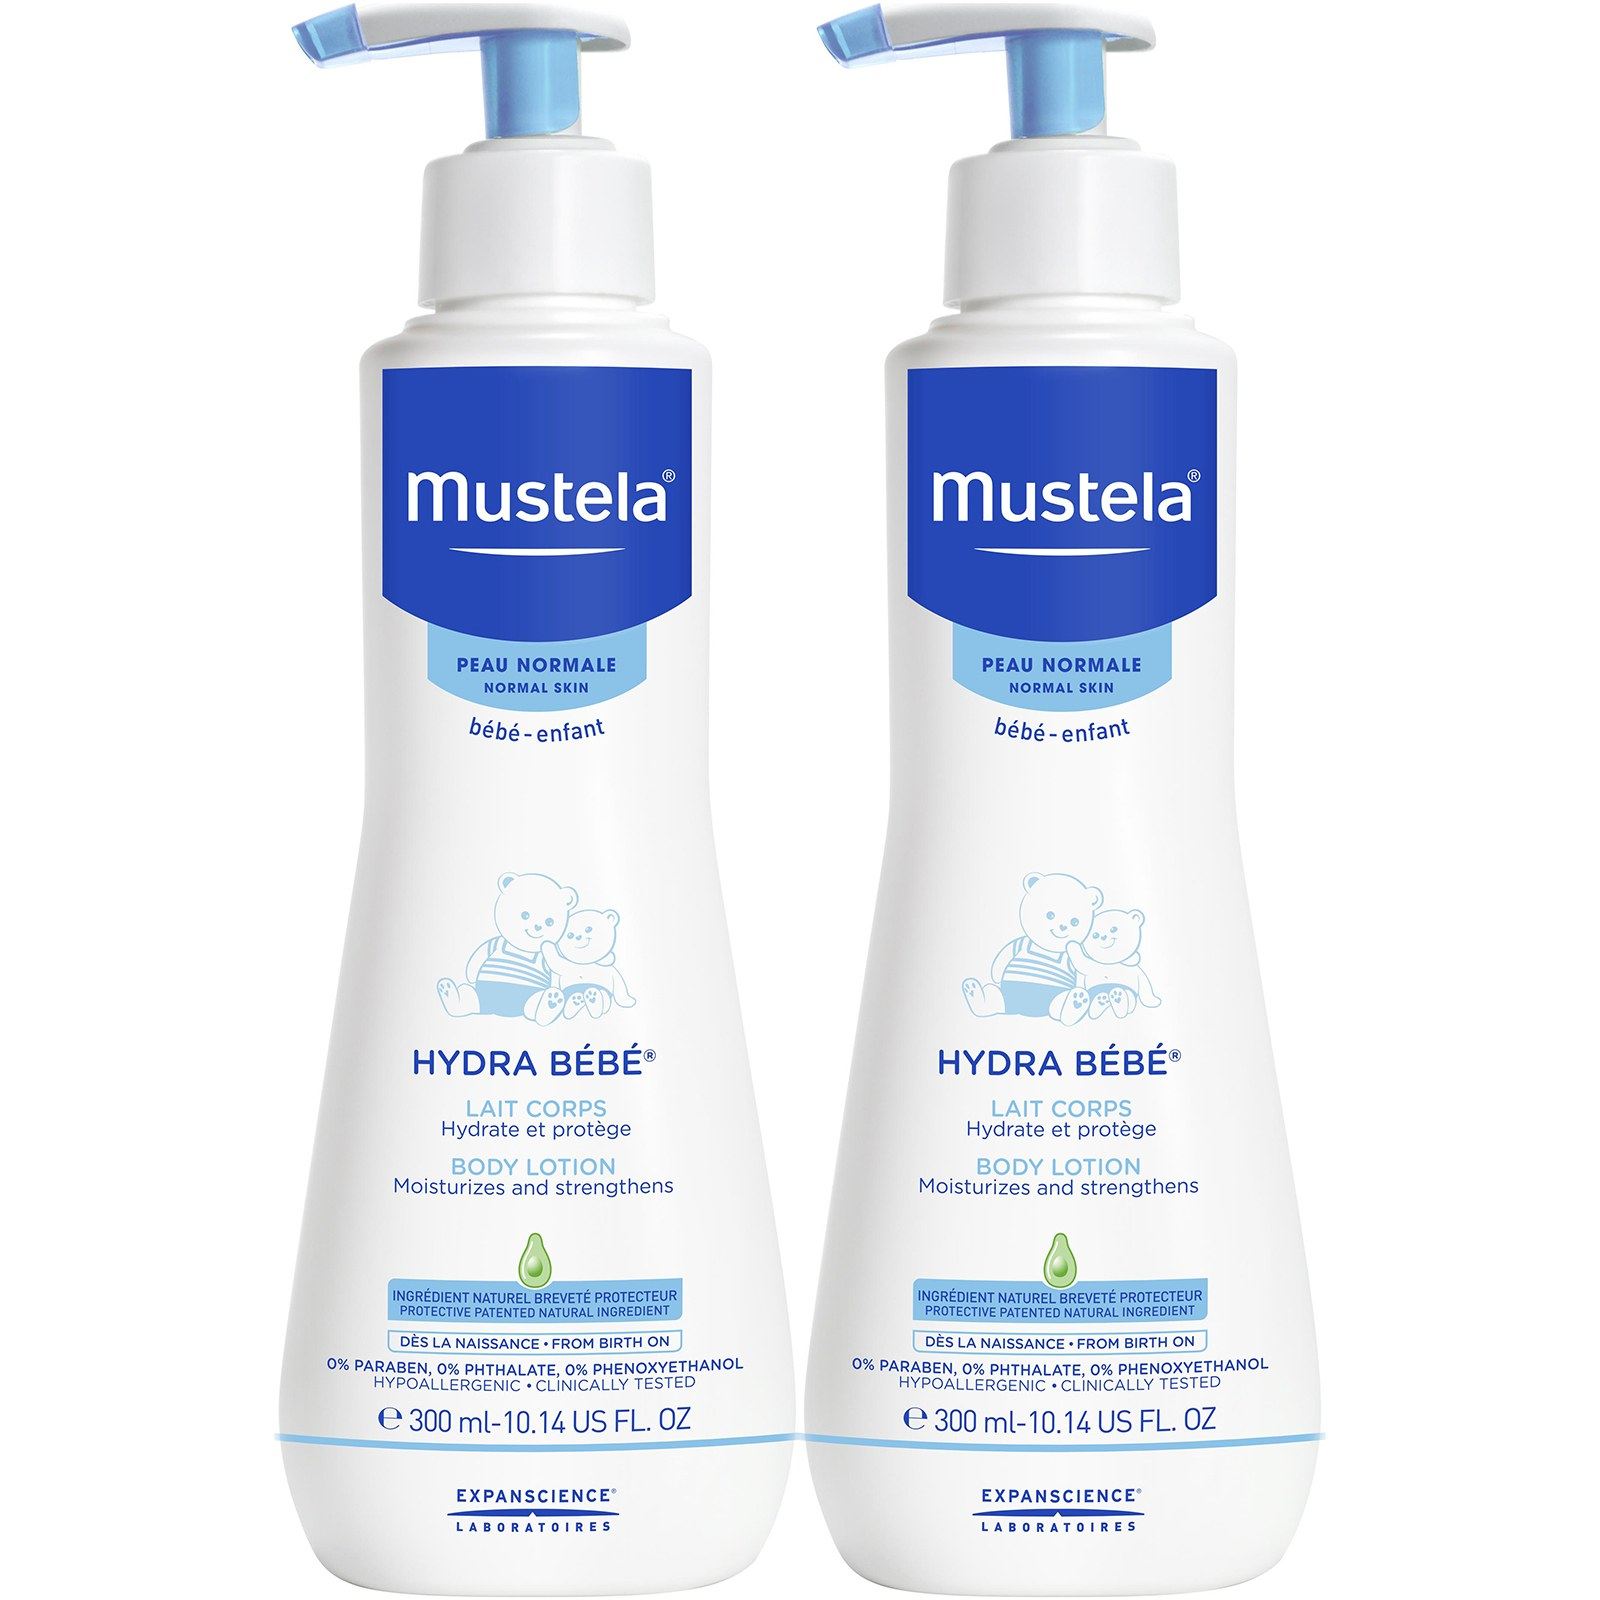 Mustela Hydra Bebe Body Lotion Pack of 2